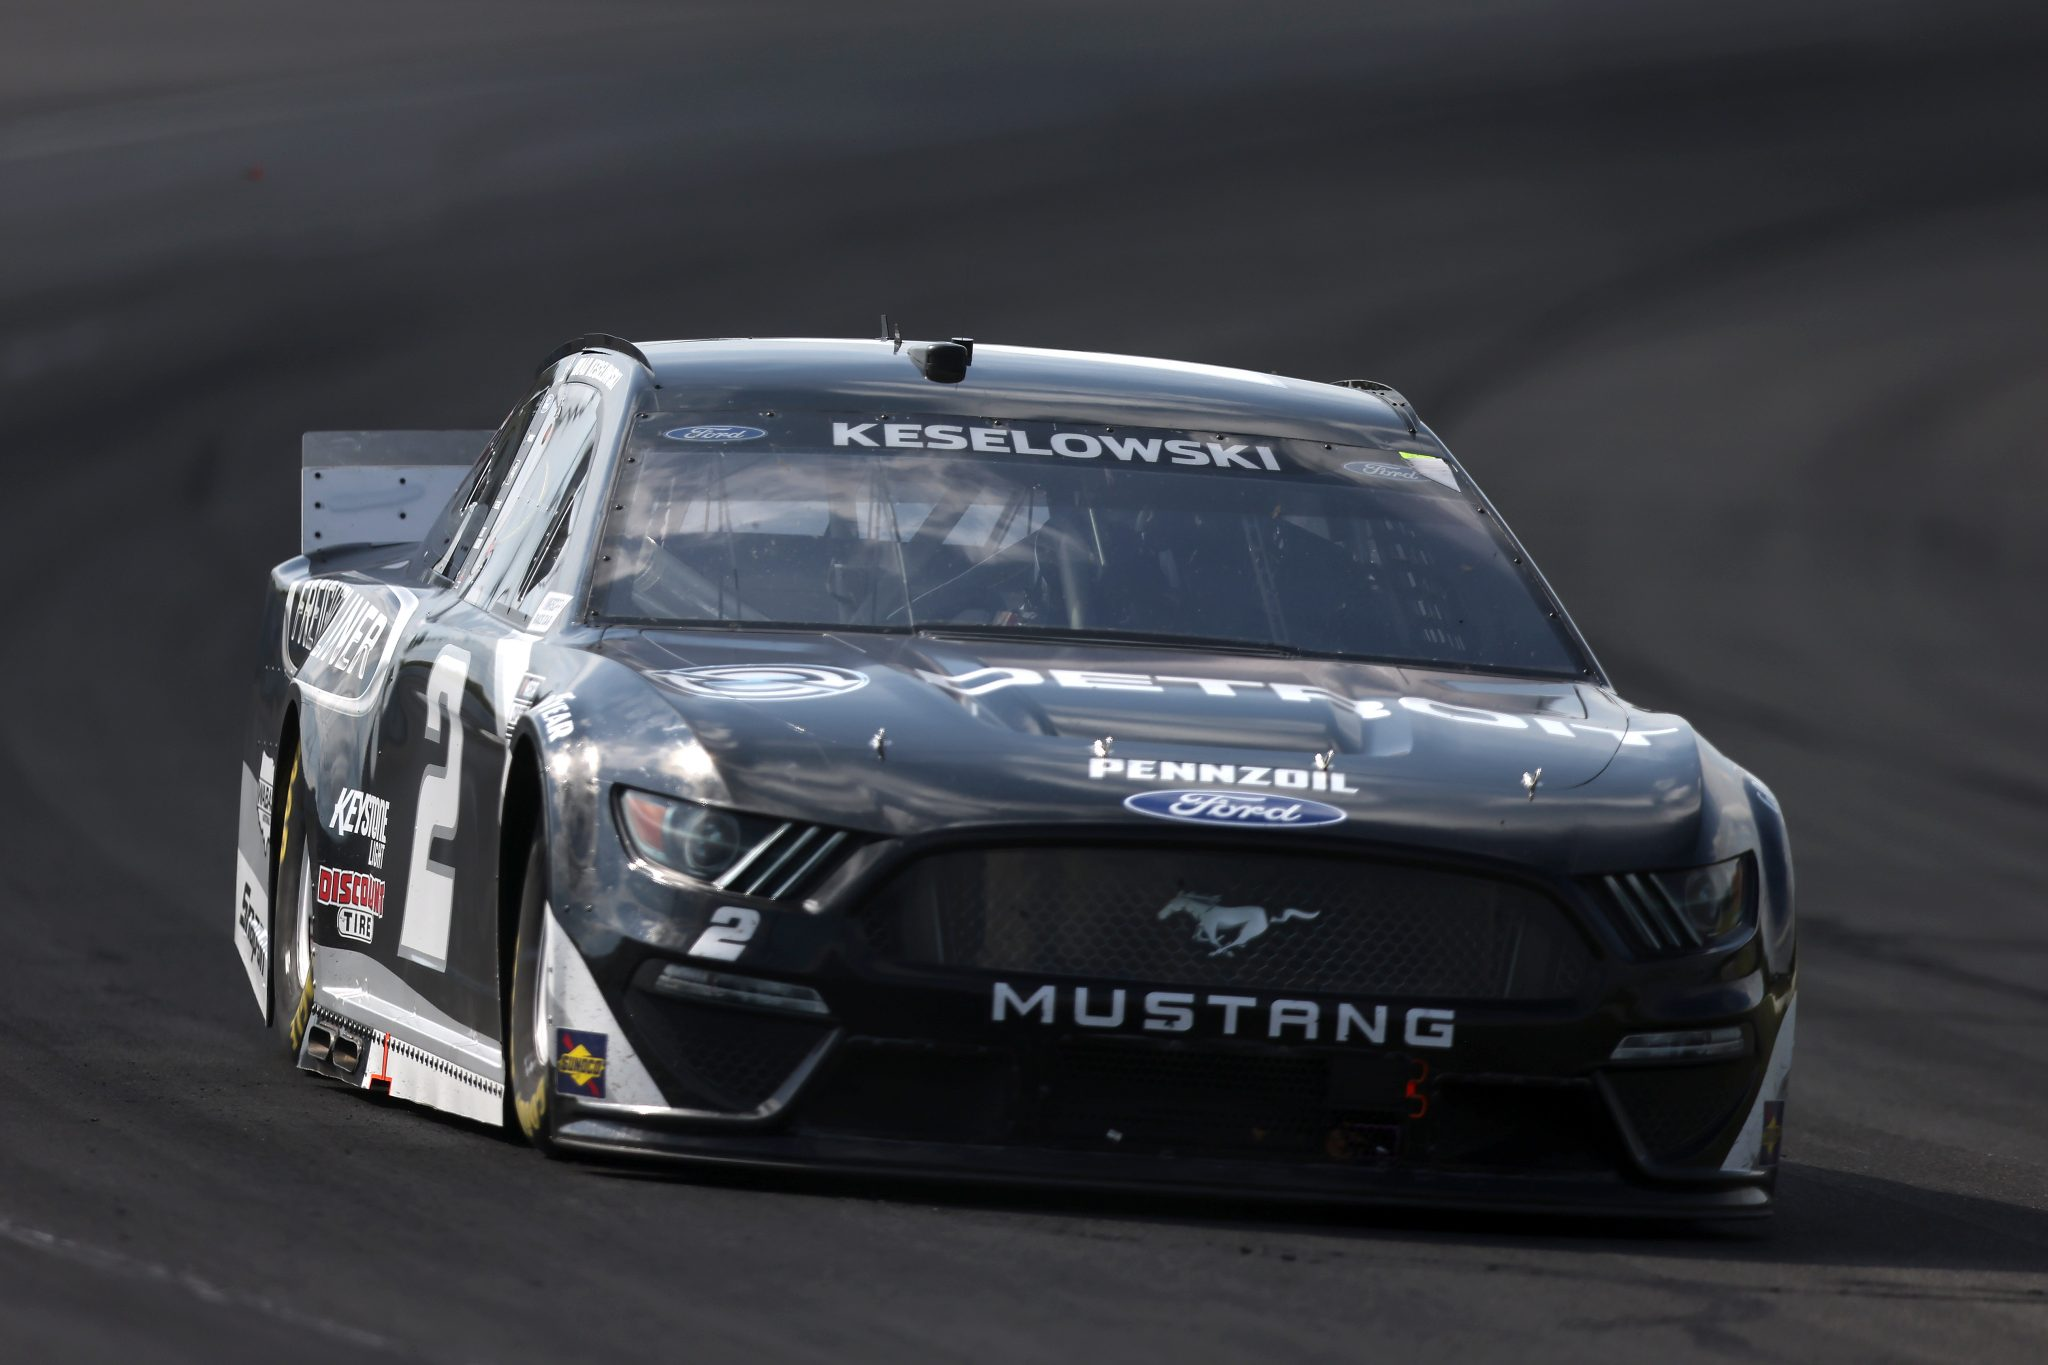 LONG POND, PENNSYLVANIA - JUNE 27: Brad Keselowski, driver of the #2 Detroit Engines Ford, drives during the NASCAR Cup Series Explore the Pocono Mountains 350 at Pocono Raceway on June 27, 2021 in Long Pond, Pennsylvania. (Photo by James Gilbert/Getty Images) | Getty Images